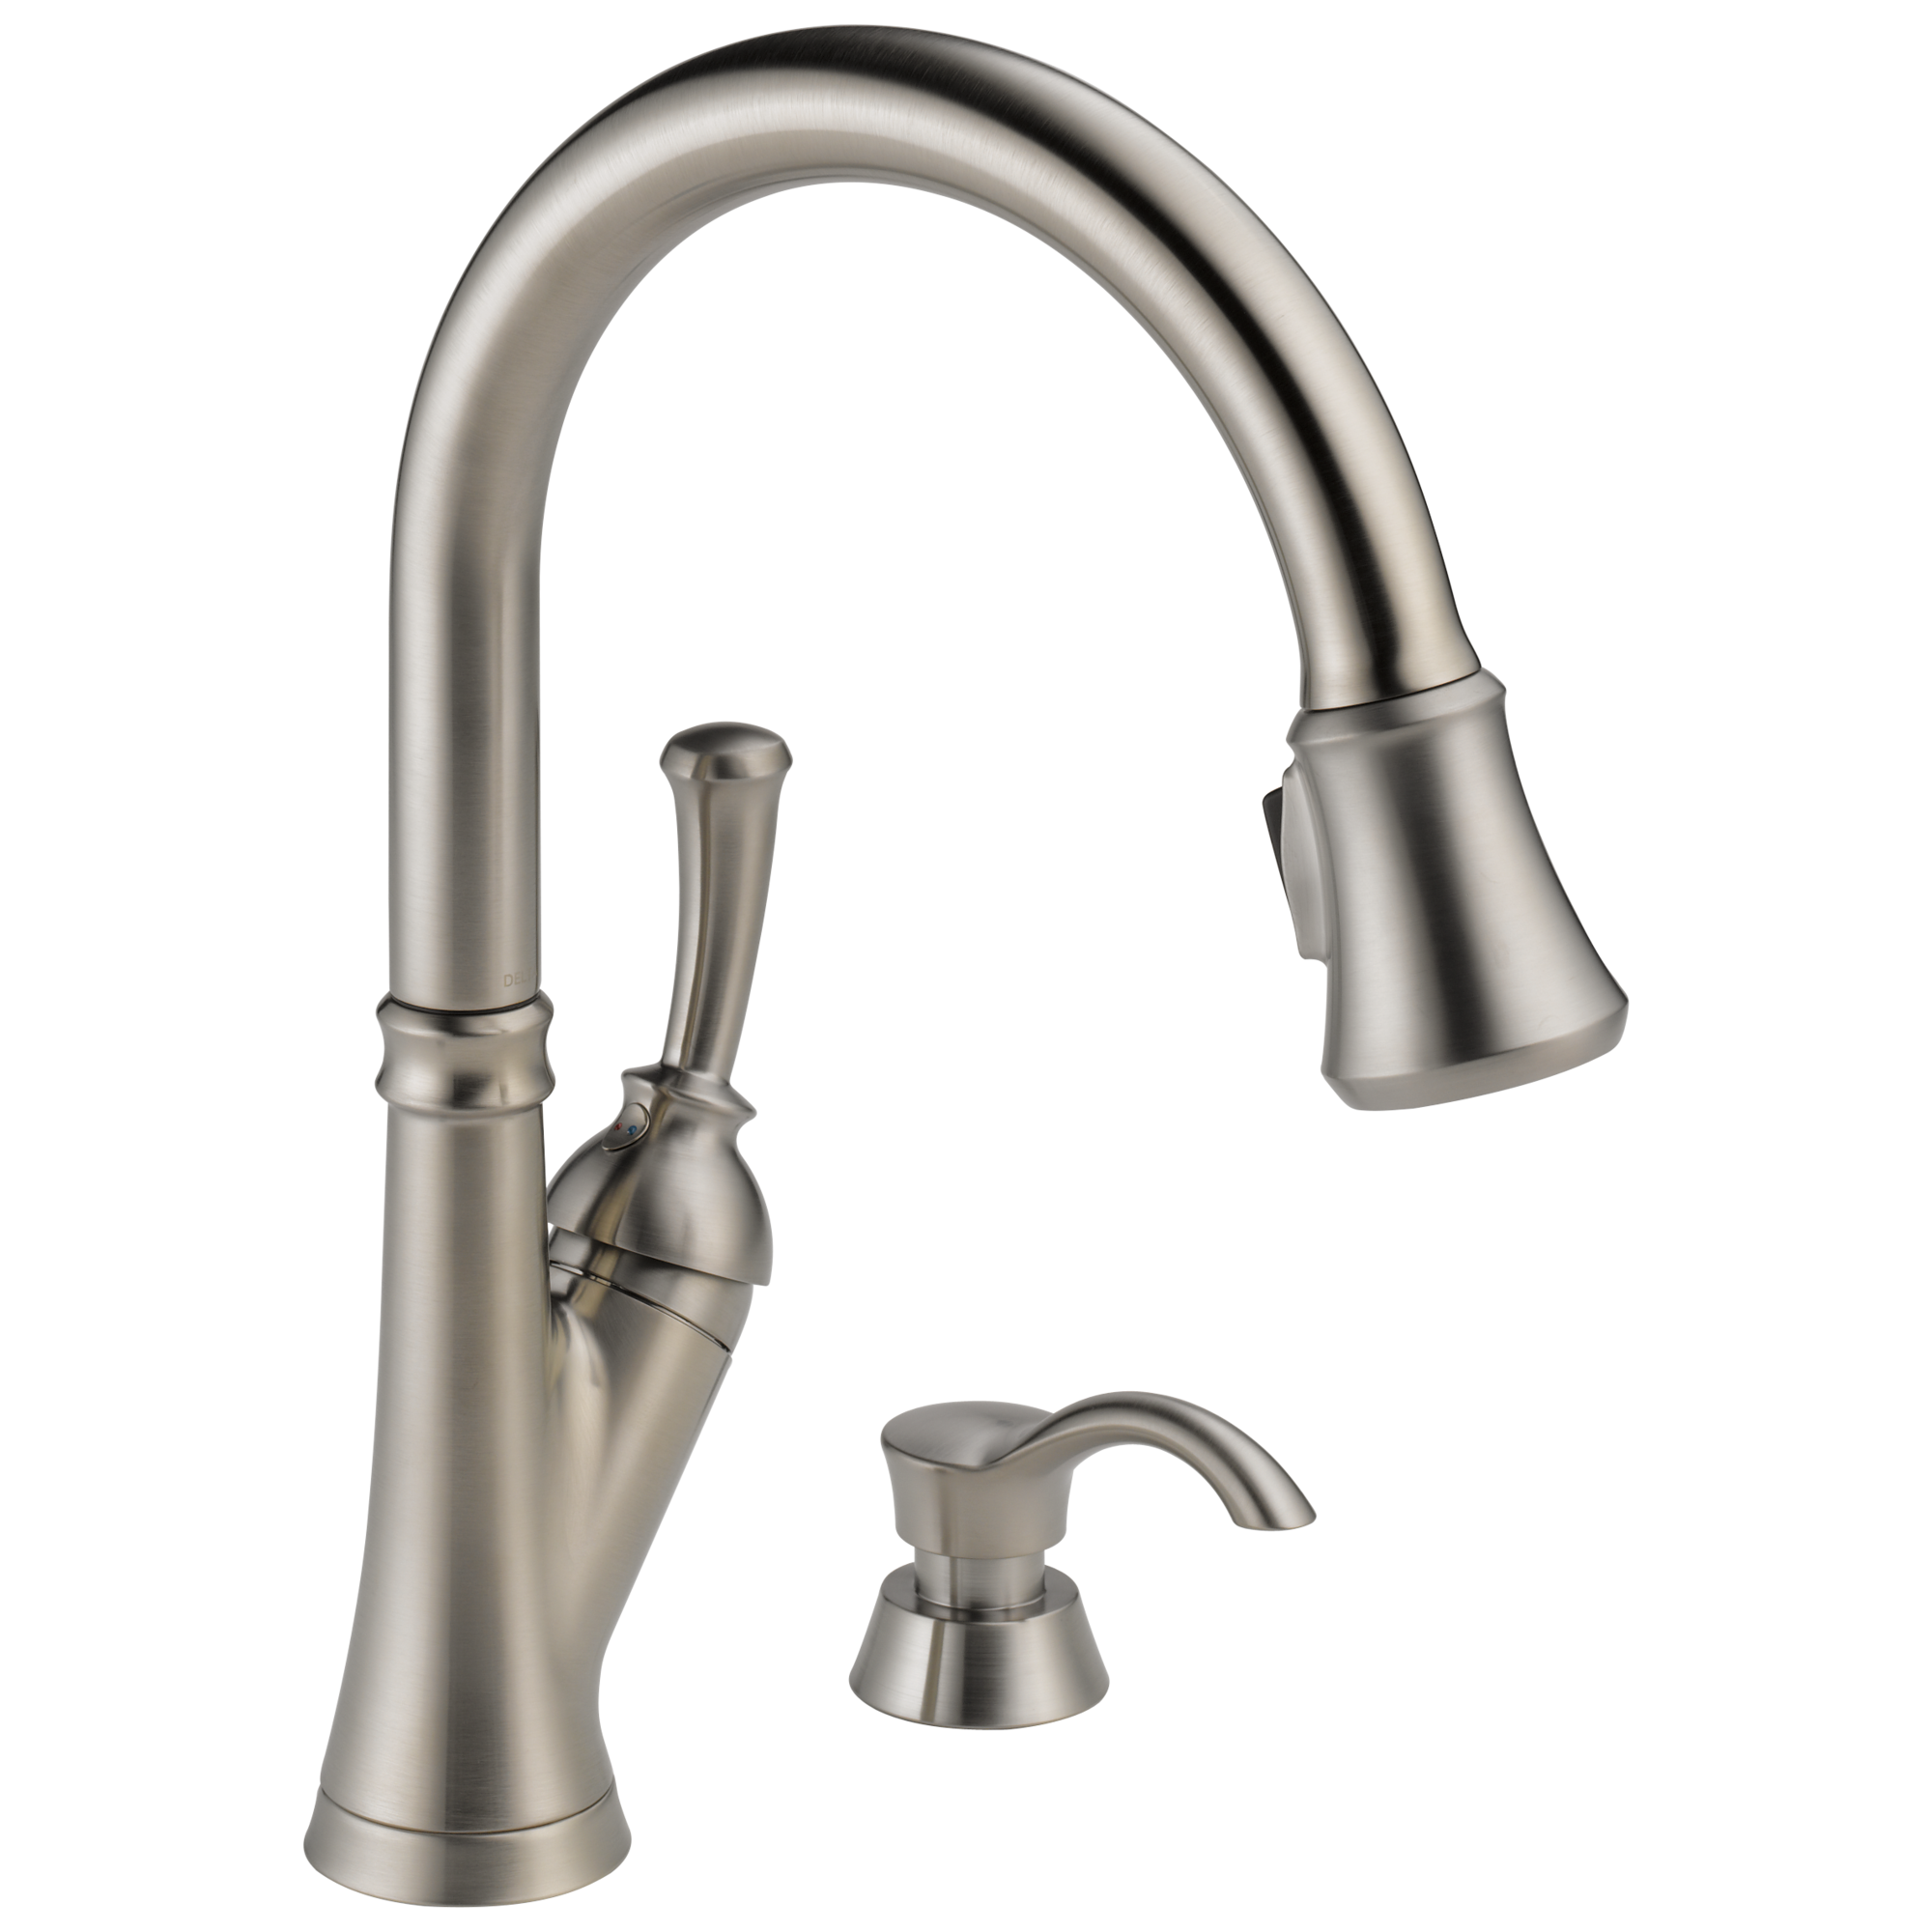 Pfister Kitchen Faucet Ratings And Reviews For Fb Ratings And Reviews For Fb Pfister Kitchen